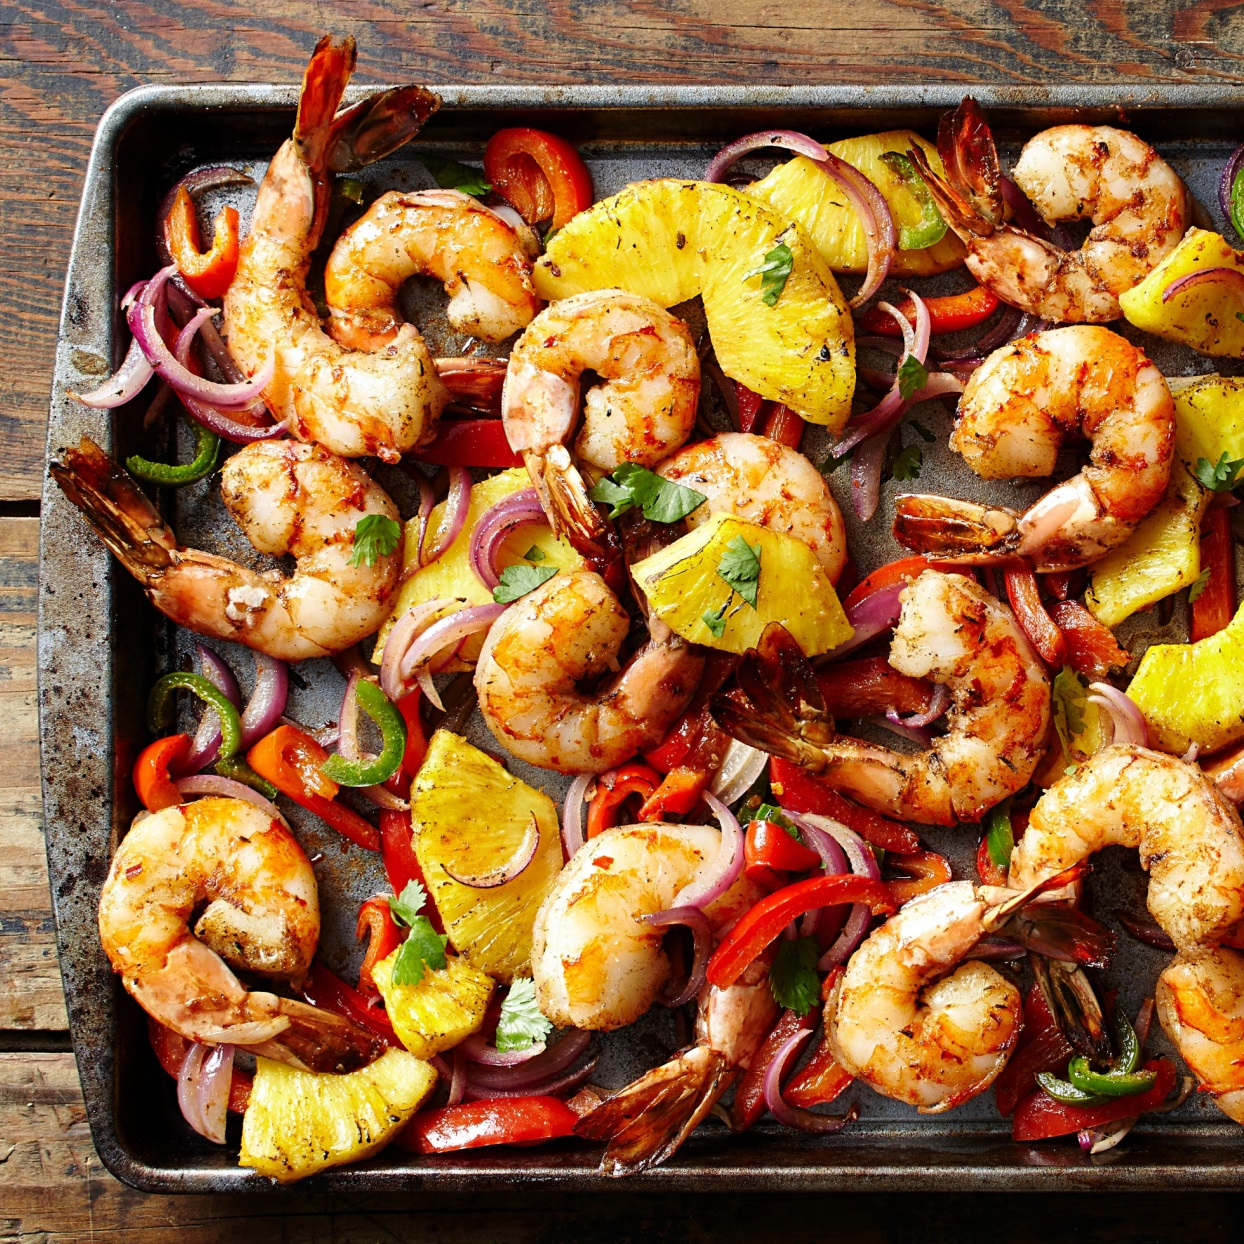 shrimp, pineapple, onion, and peppers roasted on a sheet pan